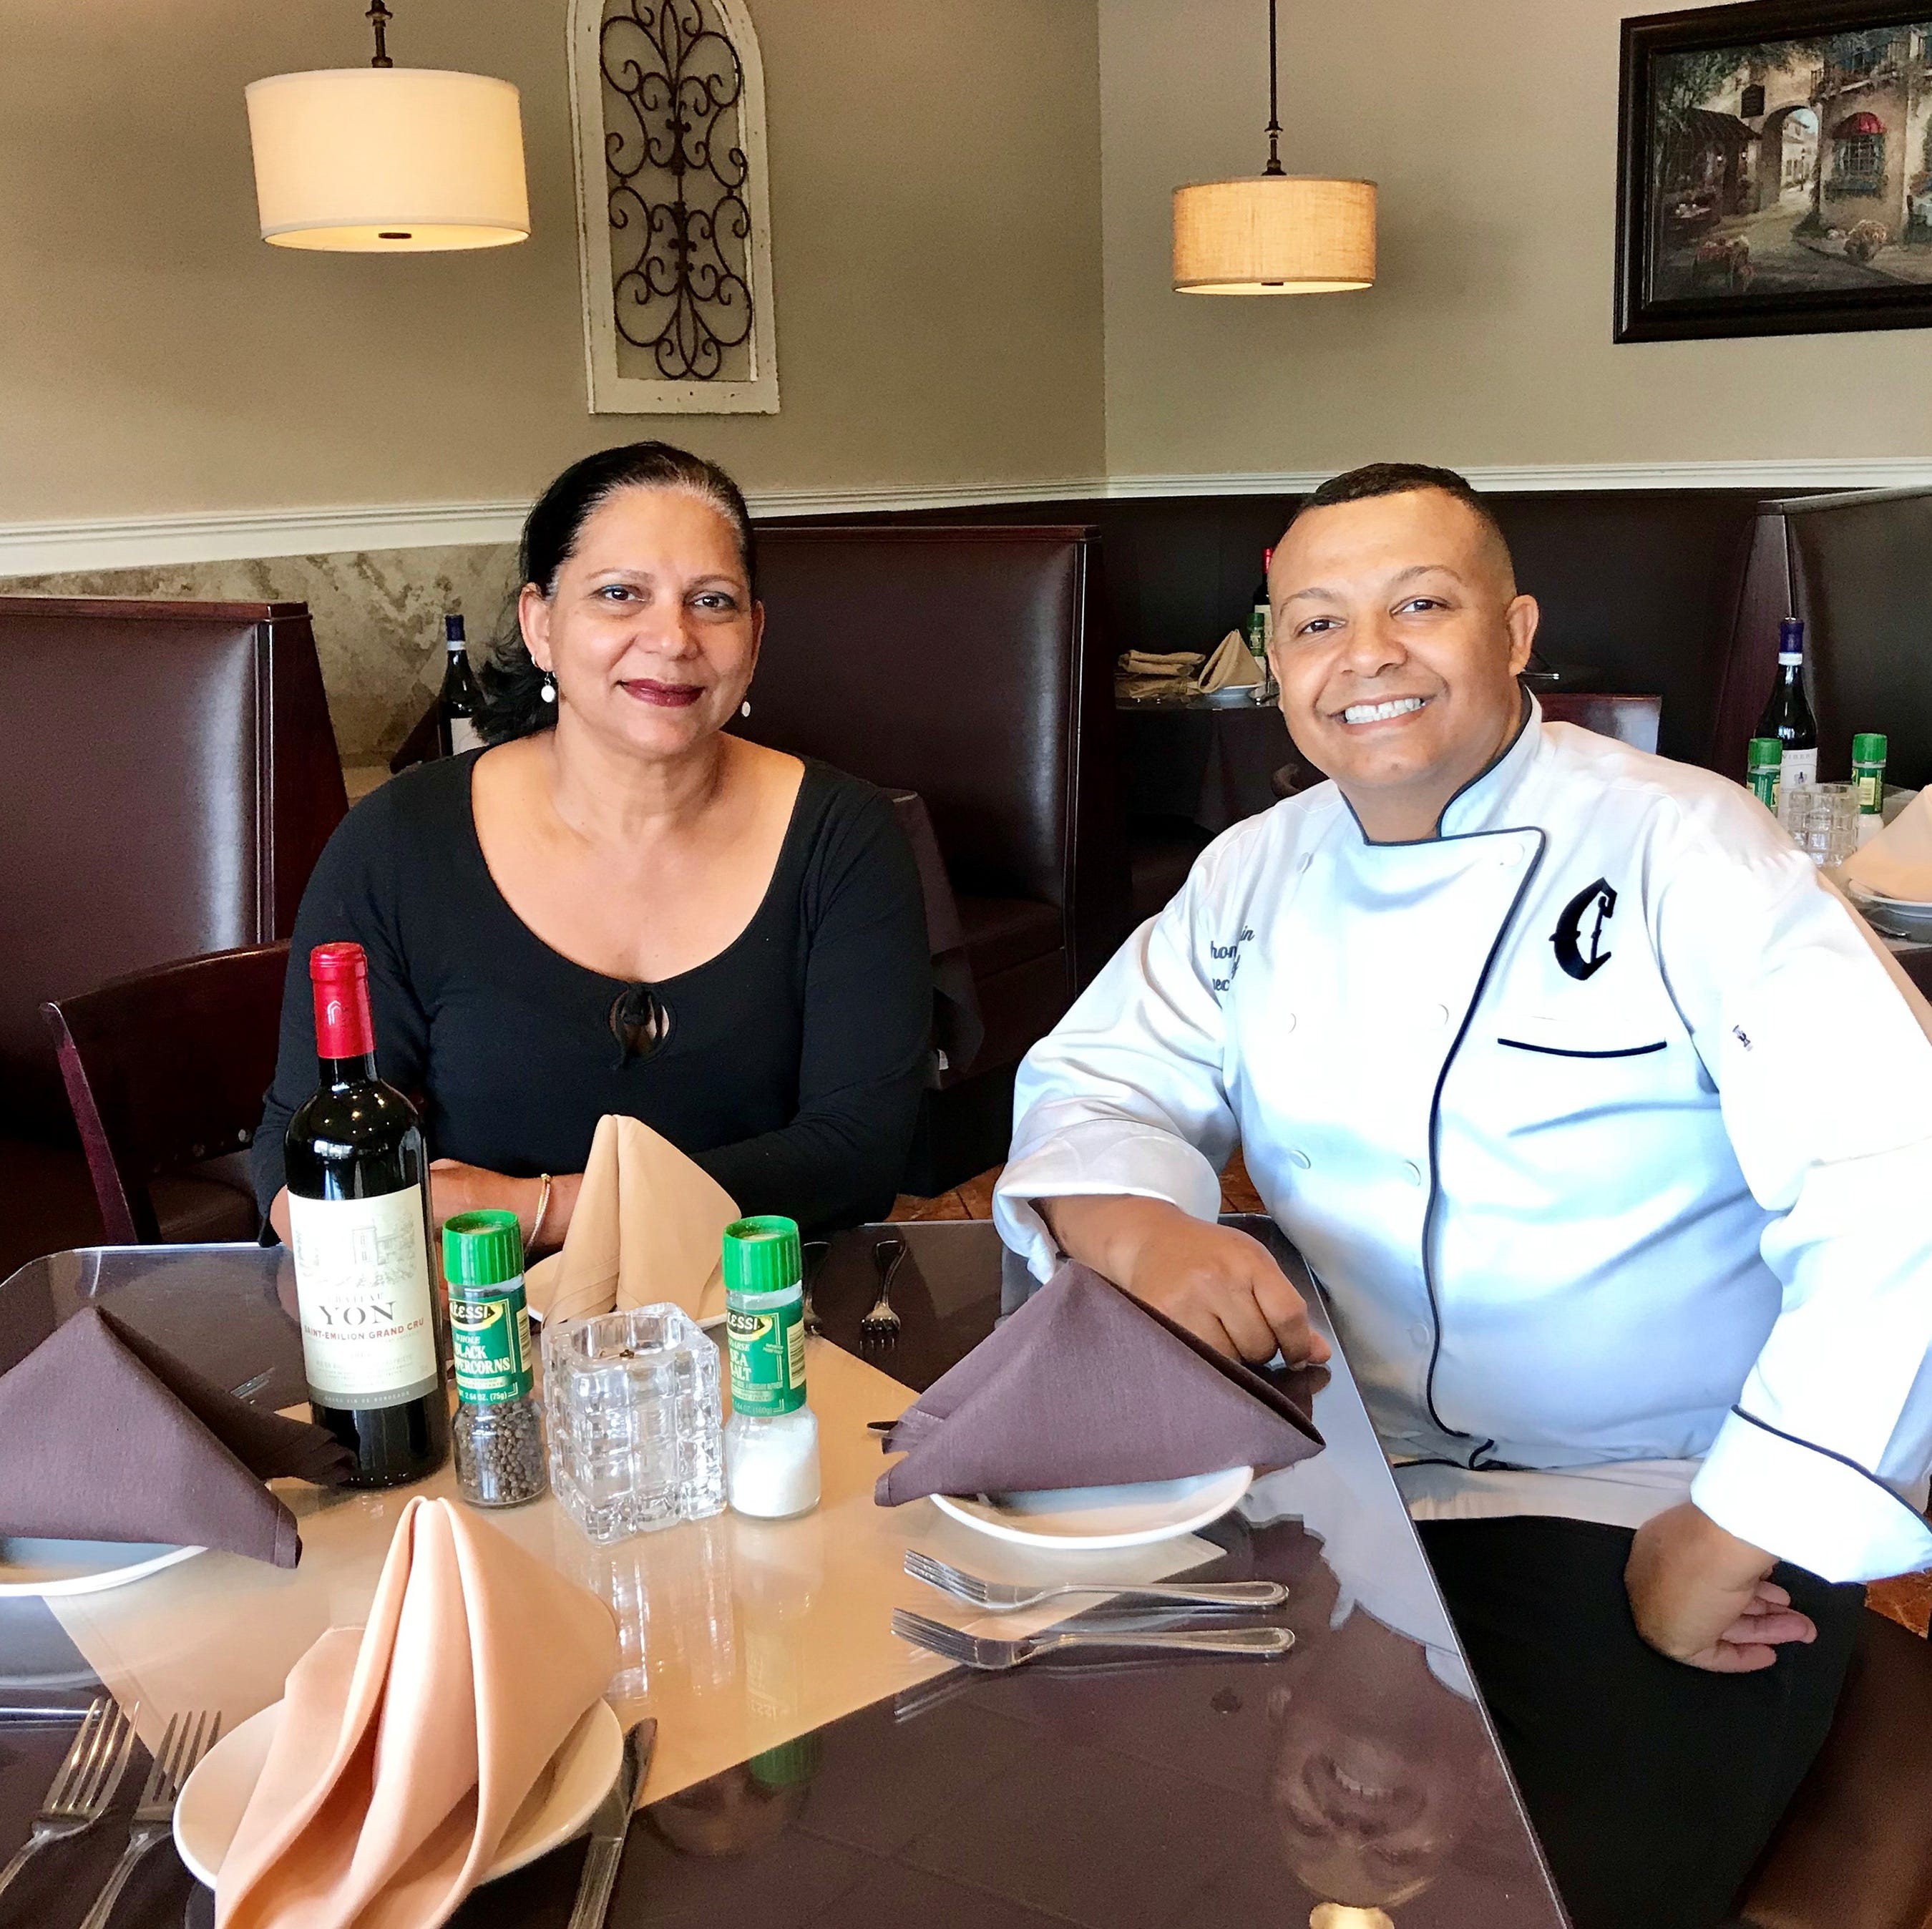 New owners add lunch at Gino's Trattoria Per Tutti in North Naples